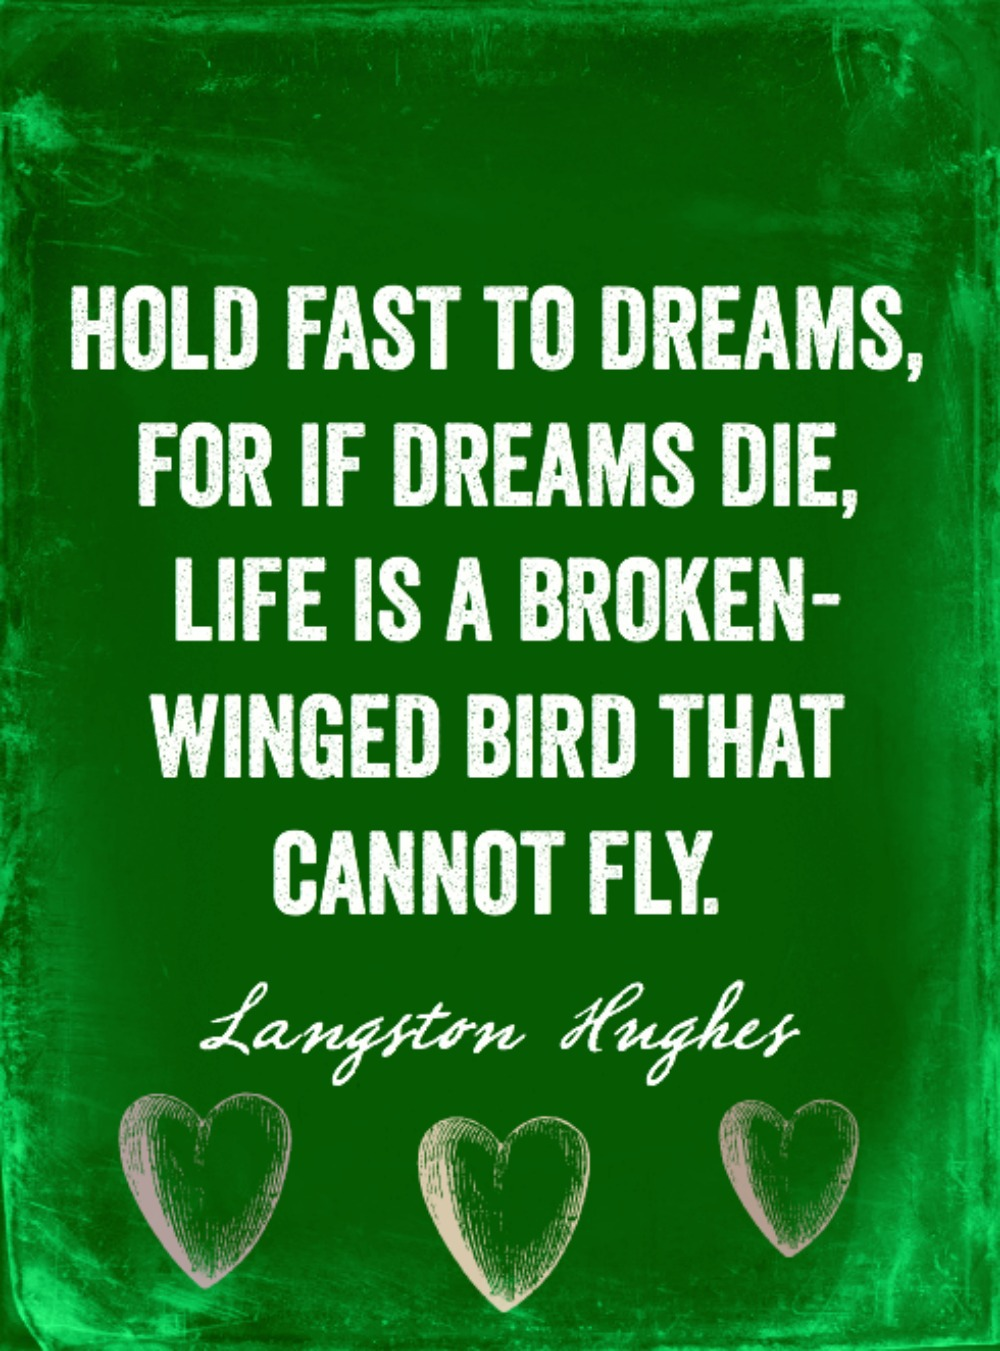 """Hold fast to dreams, for if dreams die, life is a broken-winged bird that cannot fly."" -Langston Hughes"